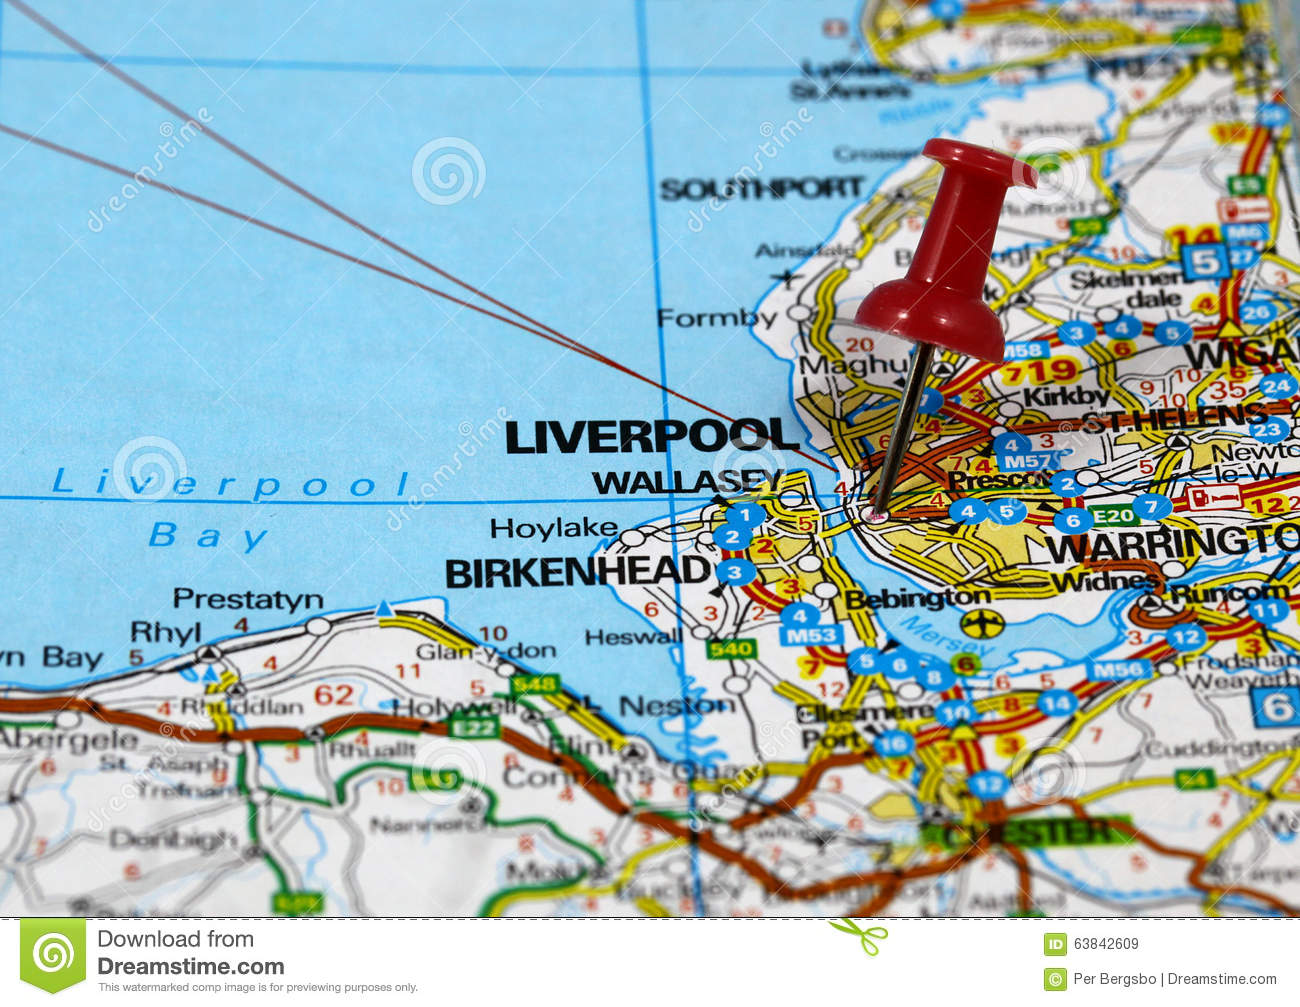 Liverpool Map Of England.Liverpool Stock Image Image Of Road Textured Blackpool 63842609